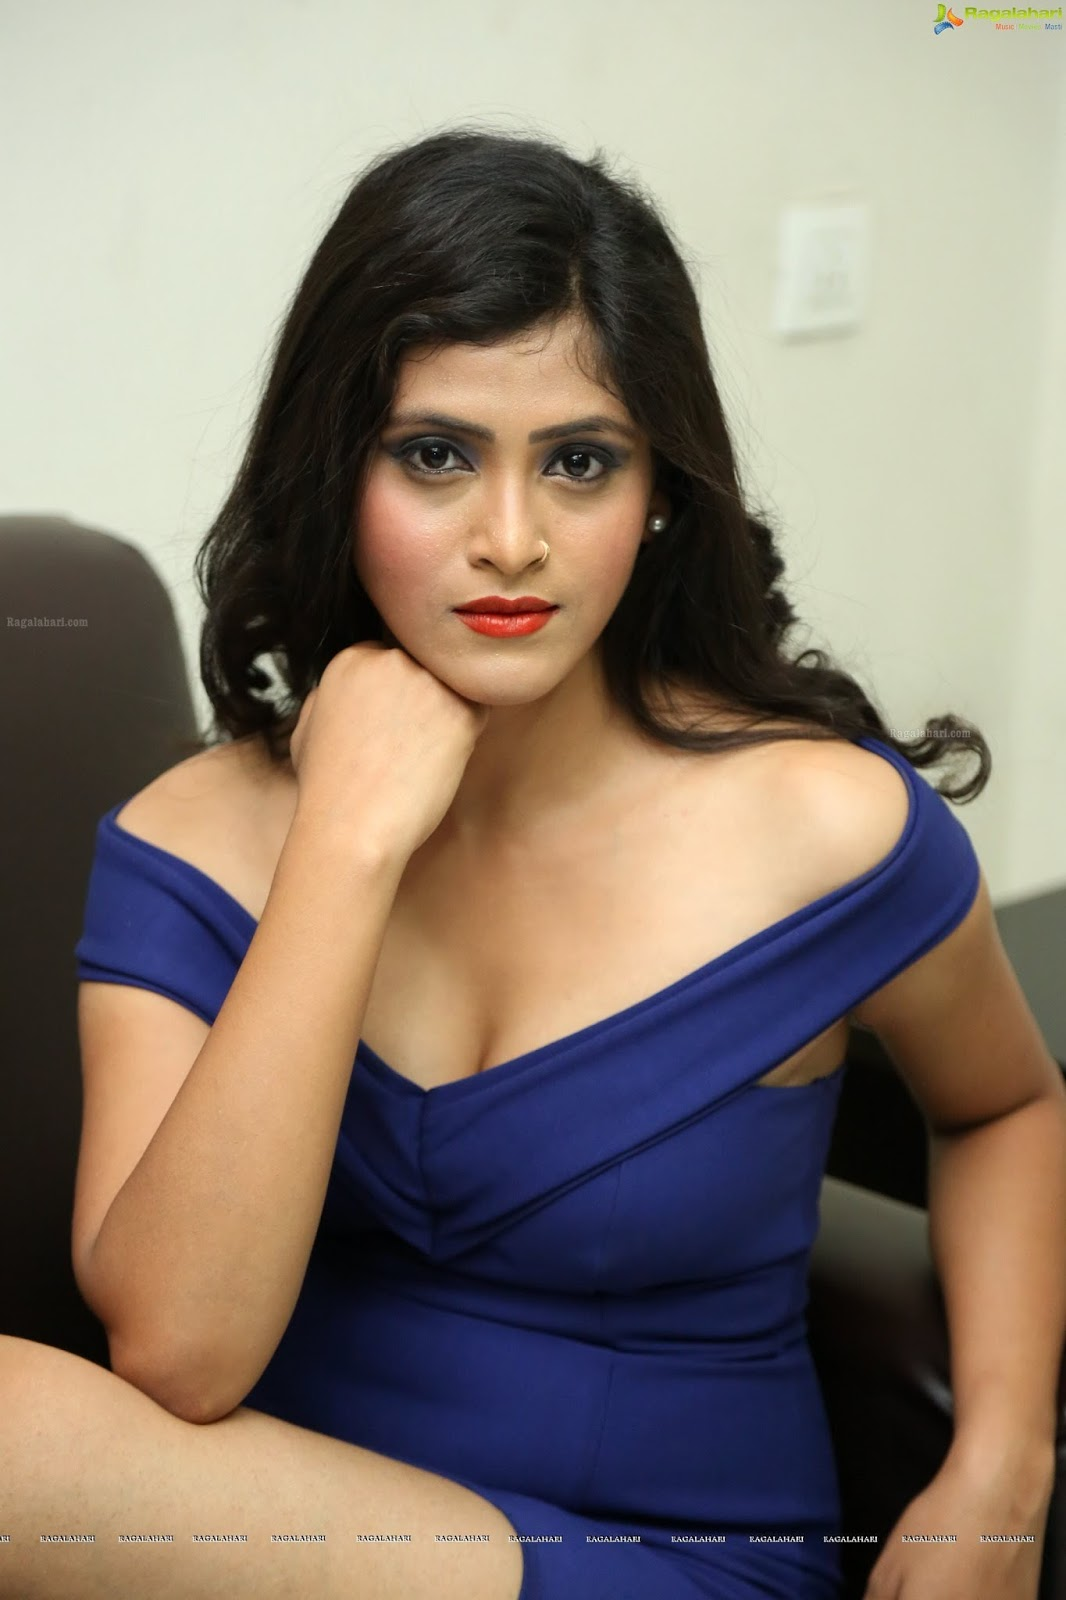 South Indian Actress HD Wallpapers 1366x768